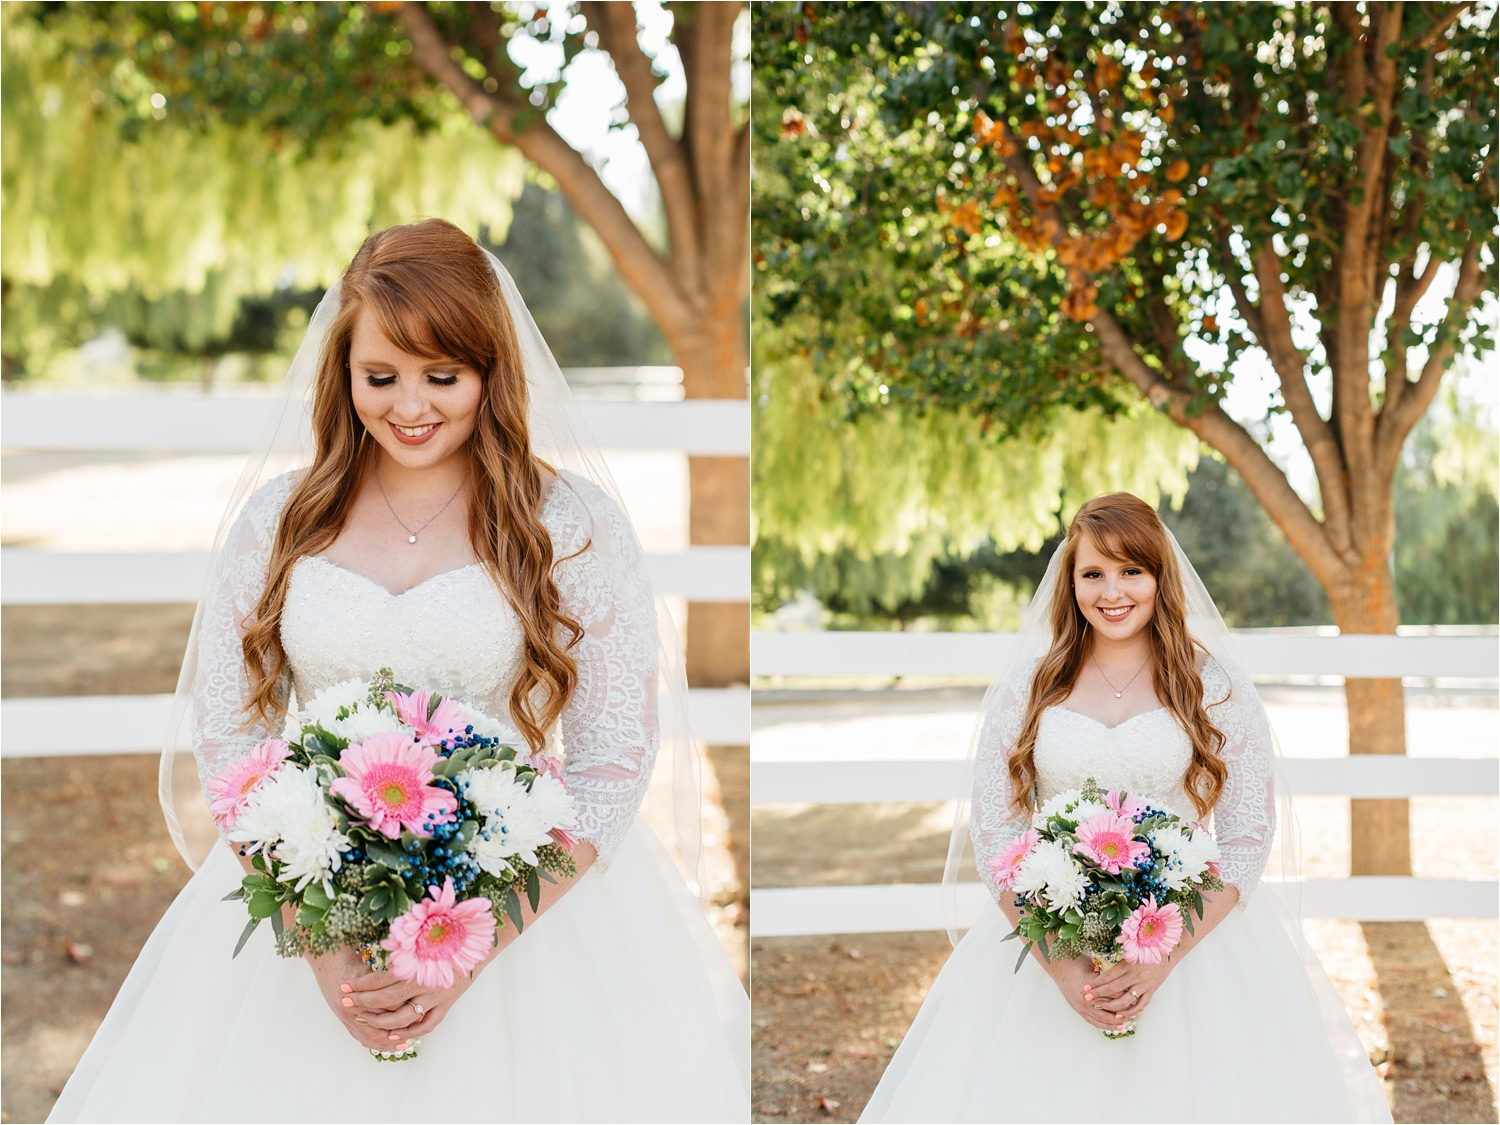 Bridal Portraits in Chino Hills at McCoy Equestrian Center - https://brittneyhannonphotography.com